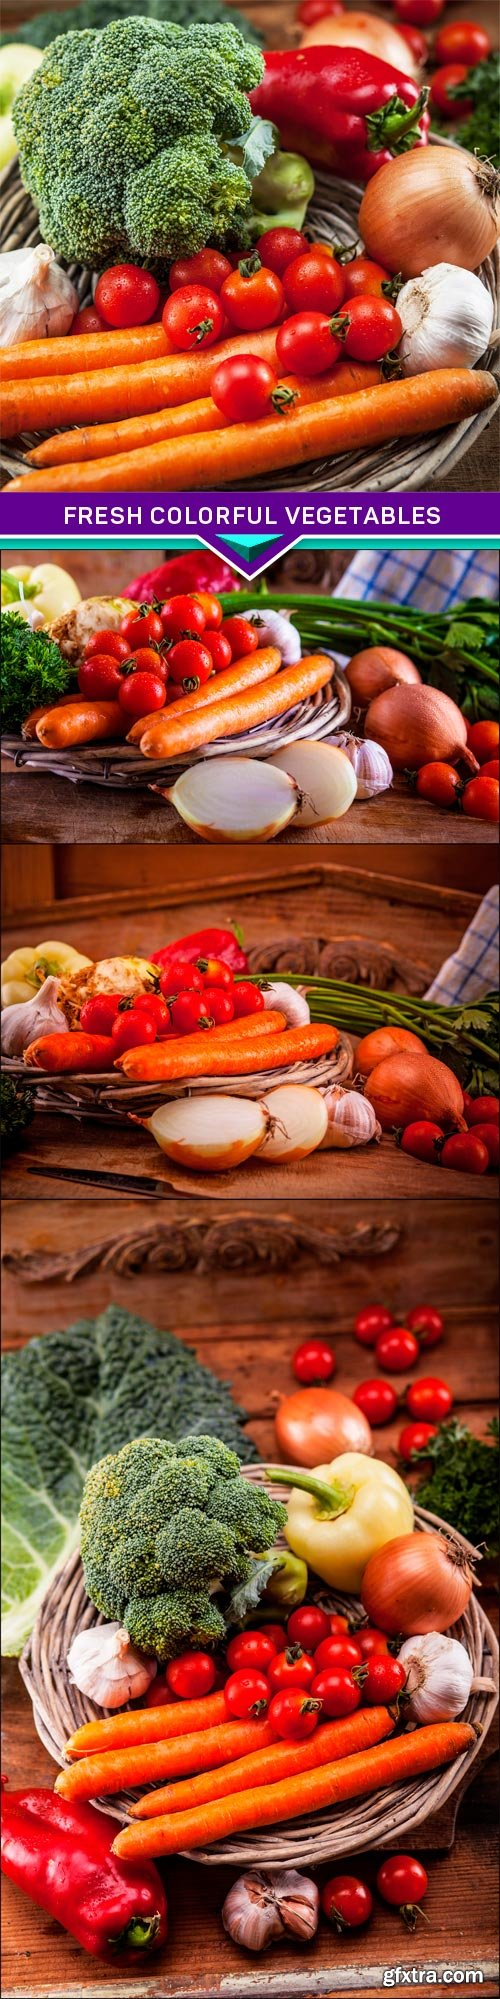 Fresh colorful vegetables 4x JPEG